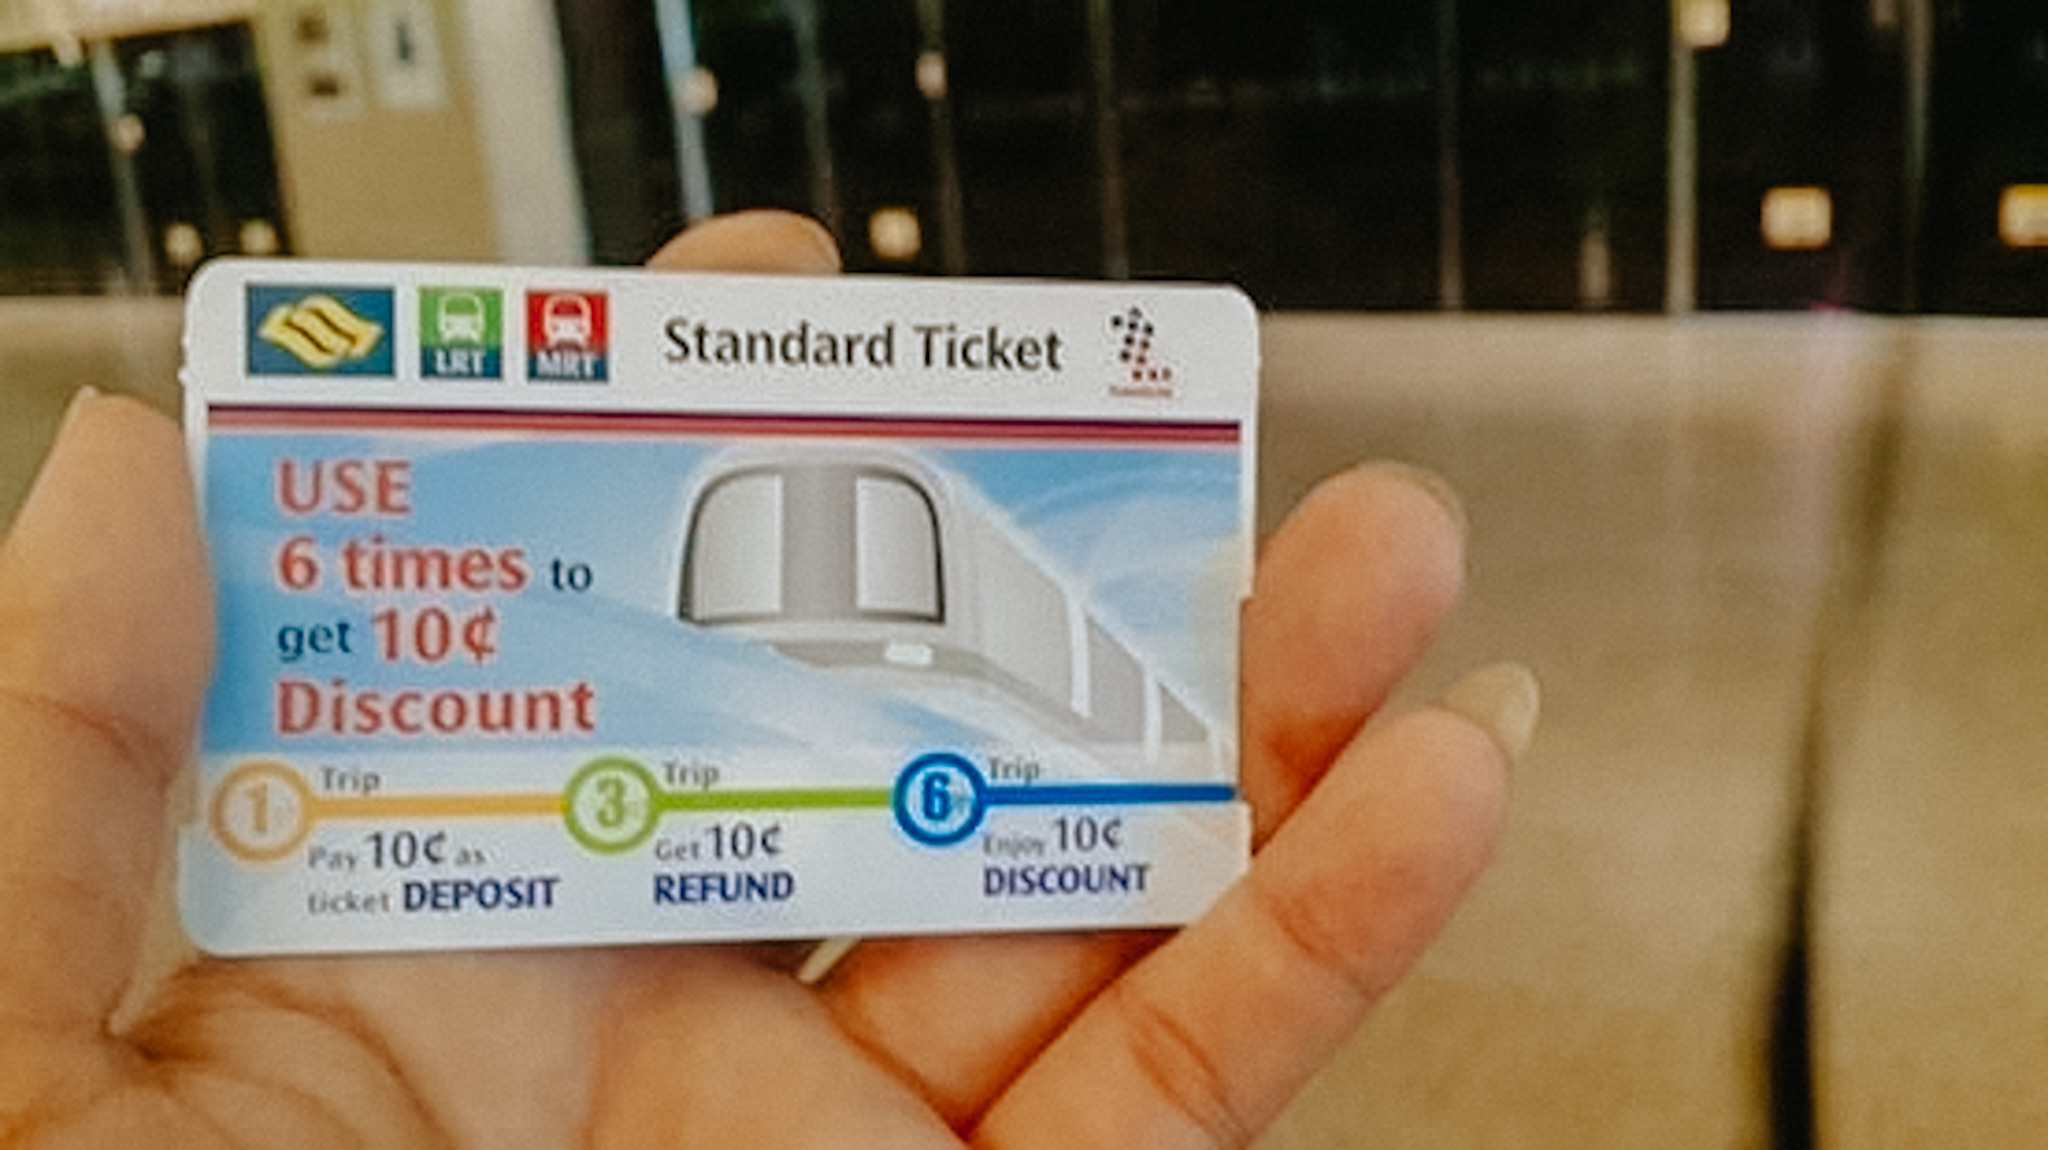 MRT Singapore Ticket